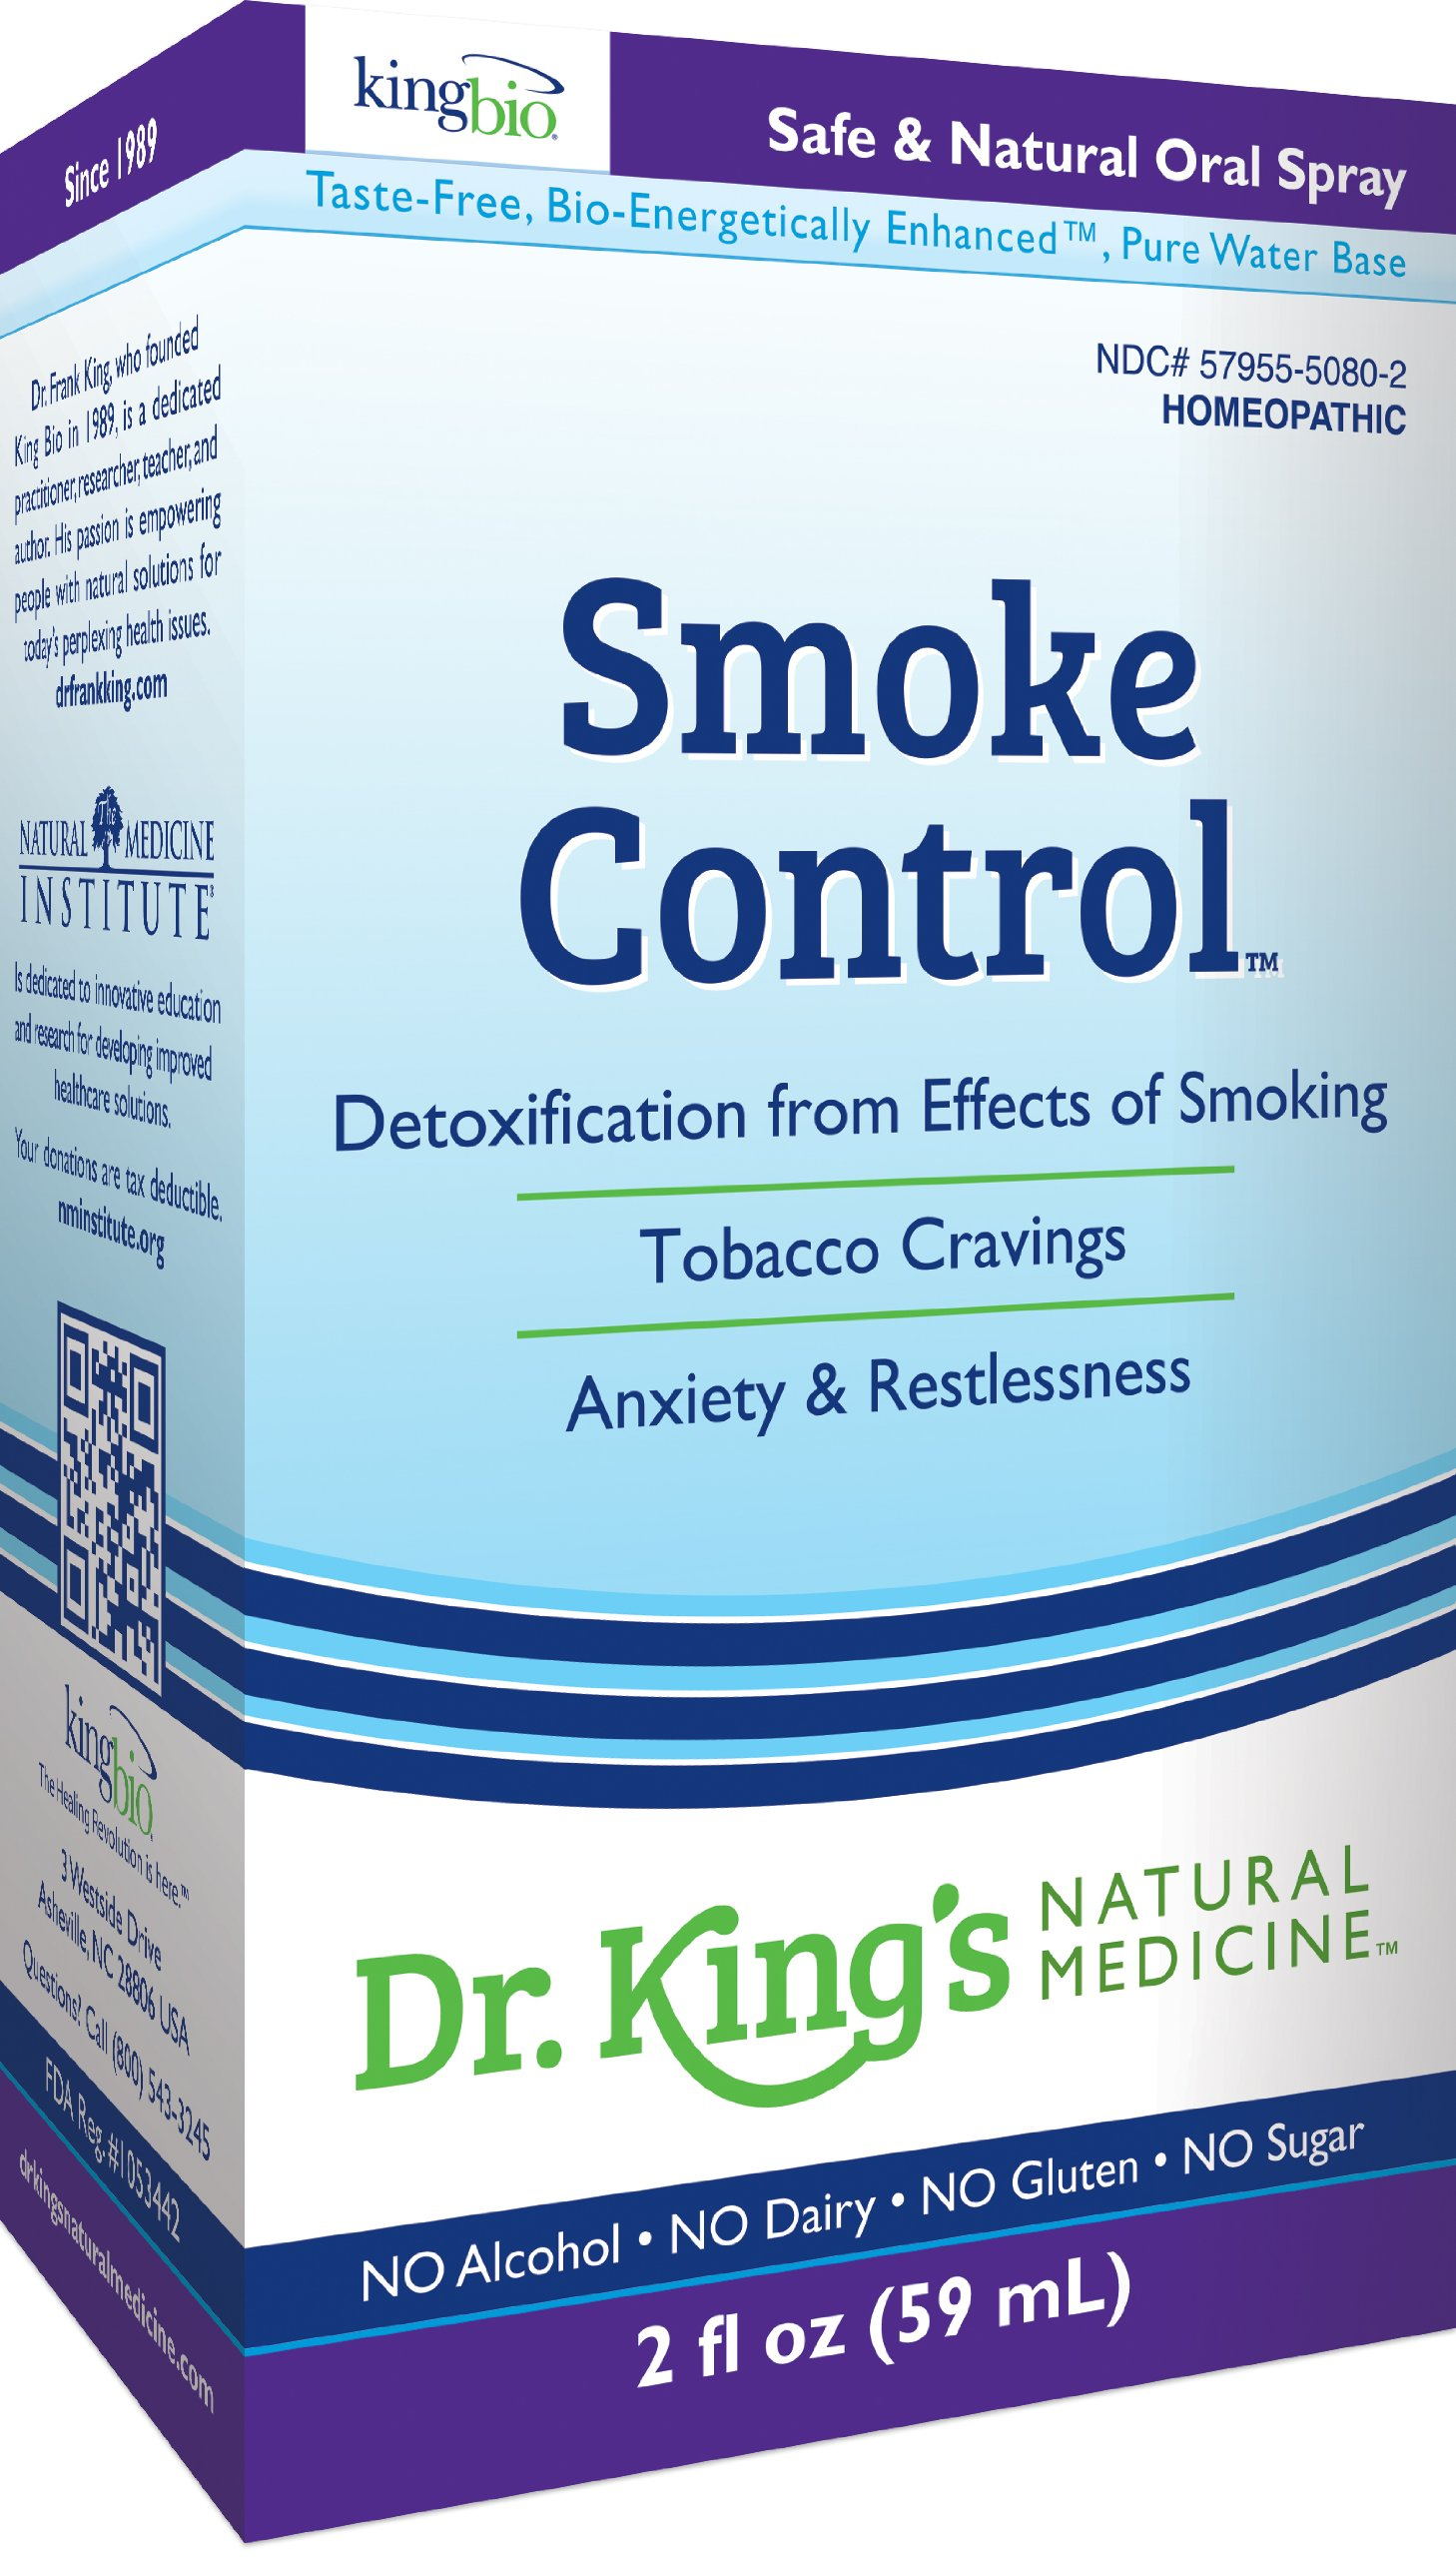 Dr. King's Natural Medicine Smoke Control, 2 Fluid Ounce